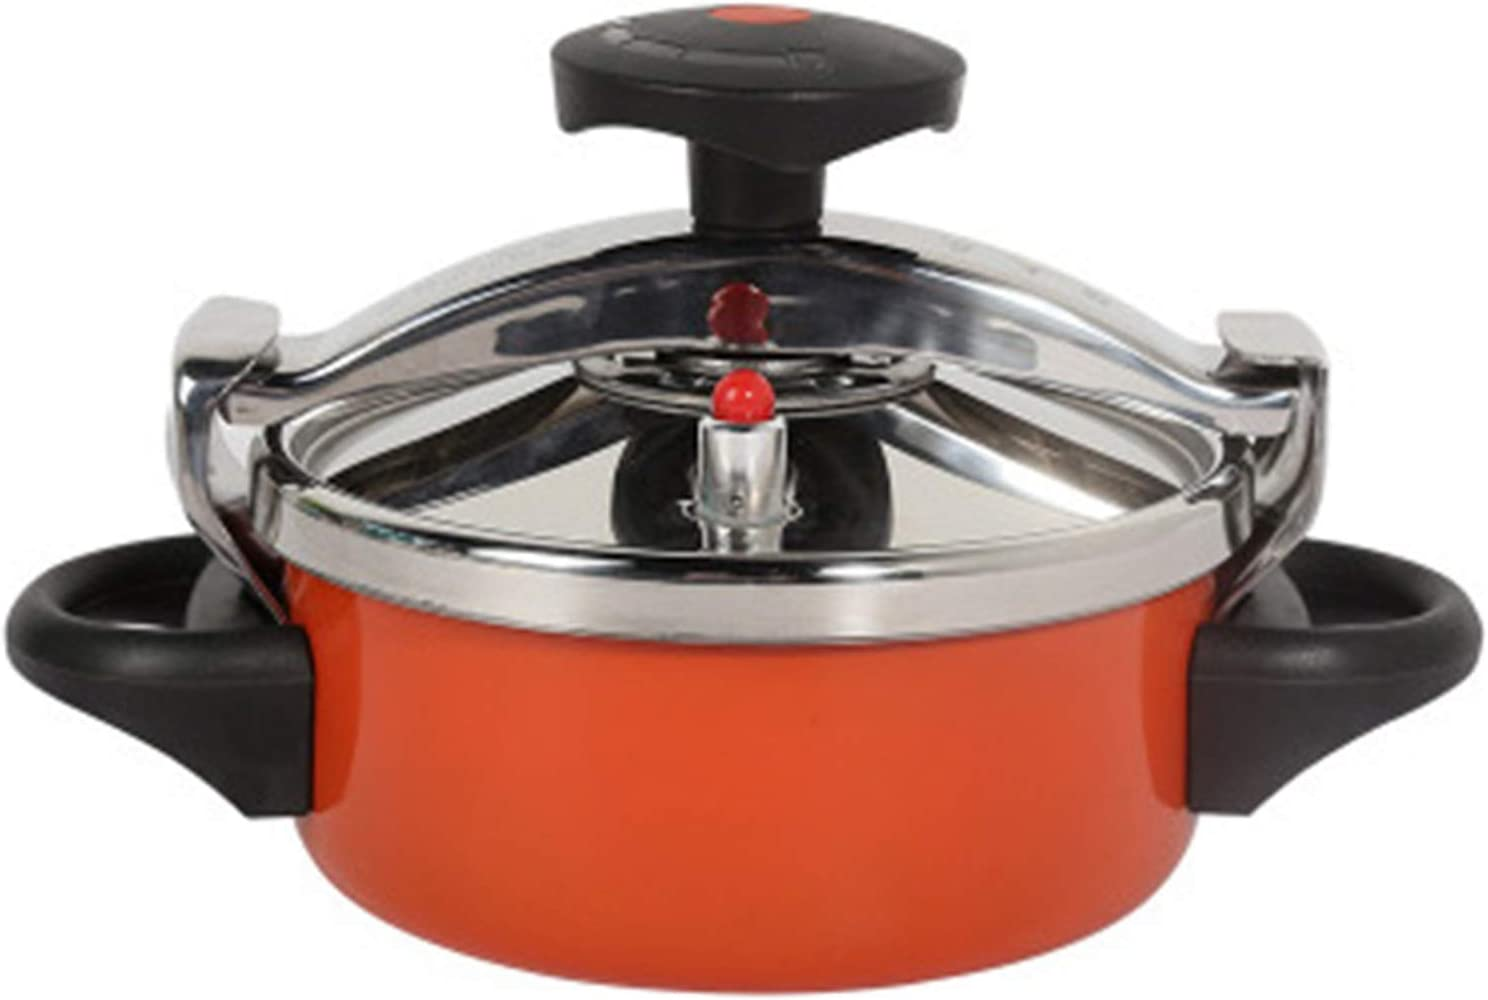 Pressure Cooker Stainless Steel Pressure Cooker Stovetop Stove Top Pressure Cooker Slow Cooker Rice Cooker Steamer Suitable for All Families (Color : Orange, Size : 2L)